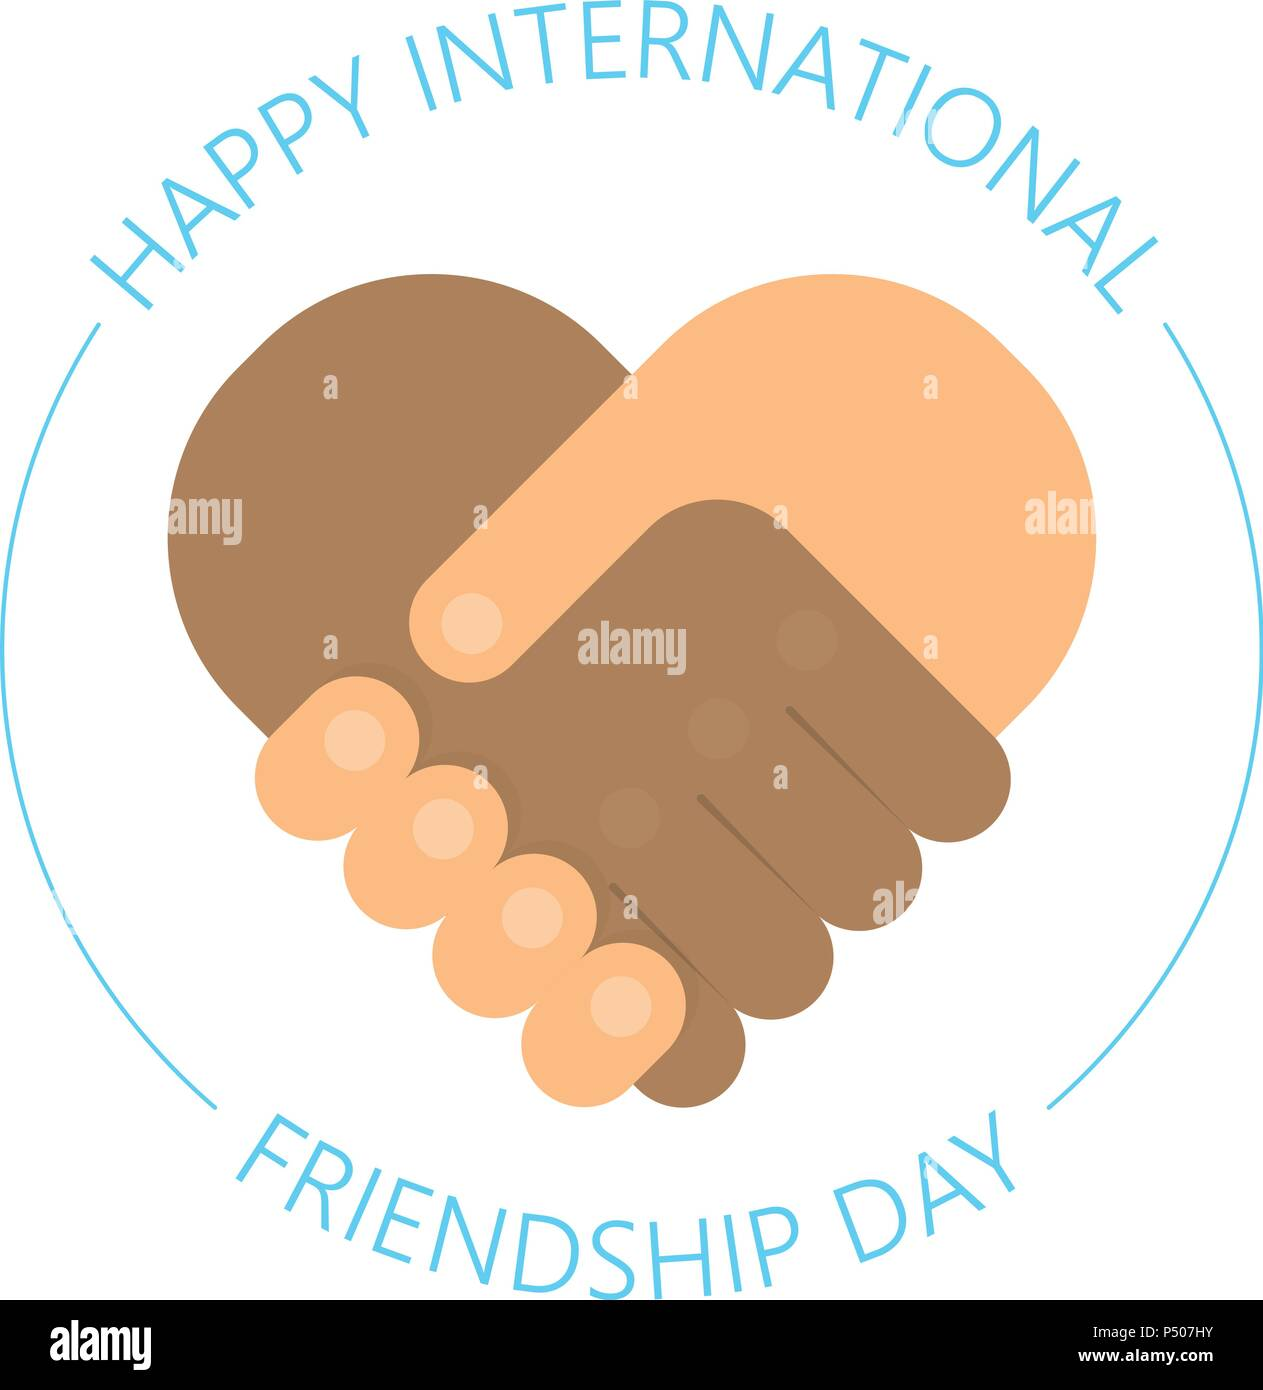 International handshake friendship logo happy friendship day handshake friendship logo happy friendship day vector fun design international holiday usable for greeting cards posters best friends forever m4hsunfo